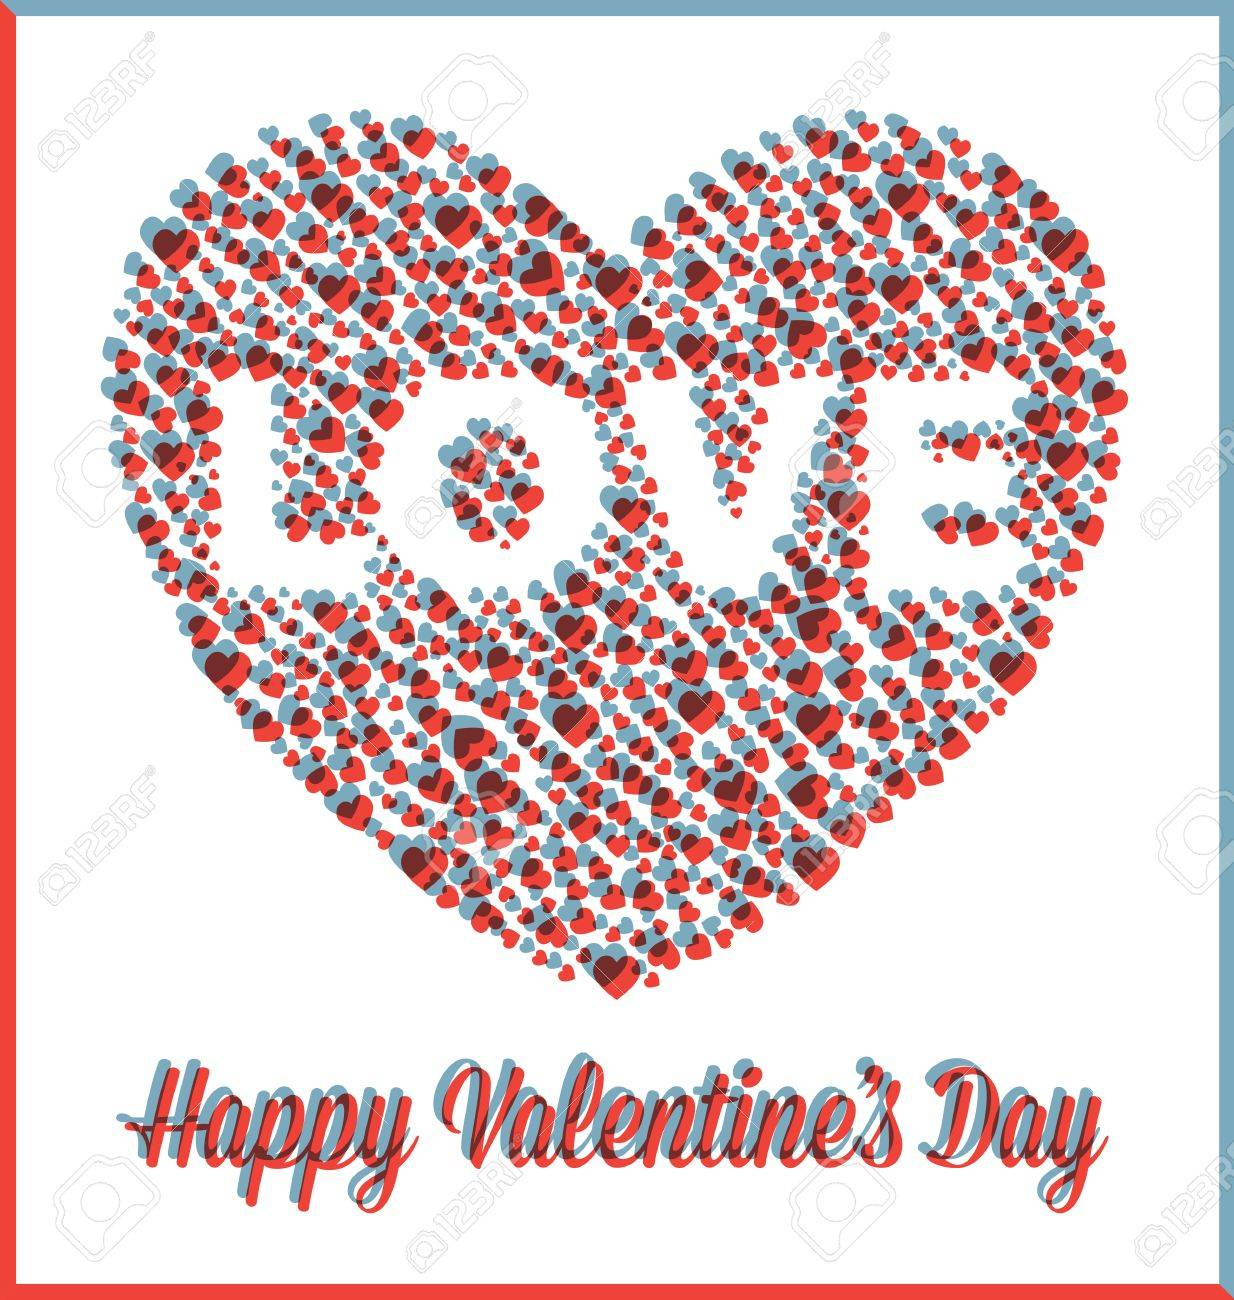 Valentine s Day Love Heart with 3D Effect Stock Vector - 17096756